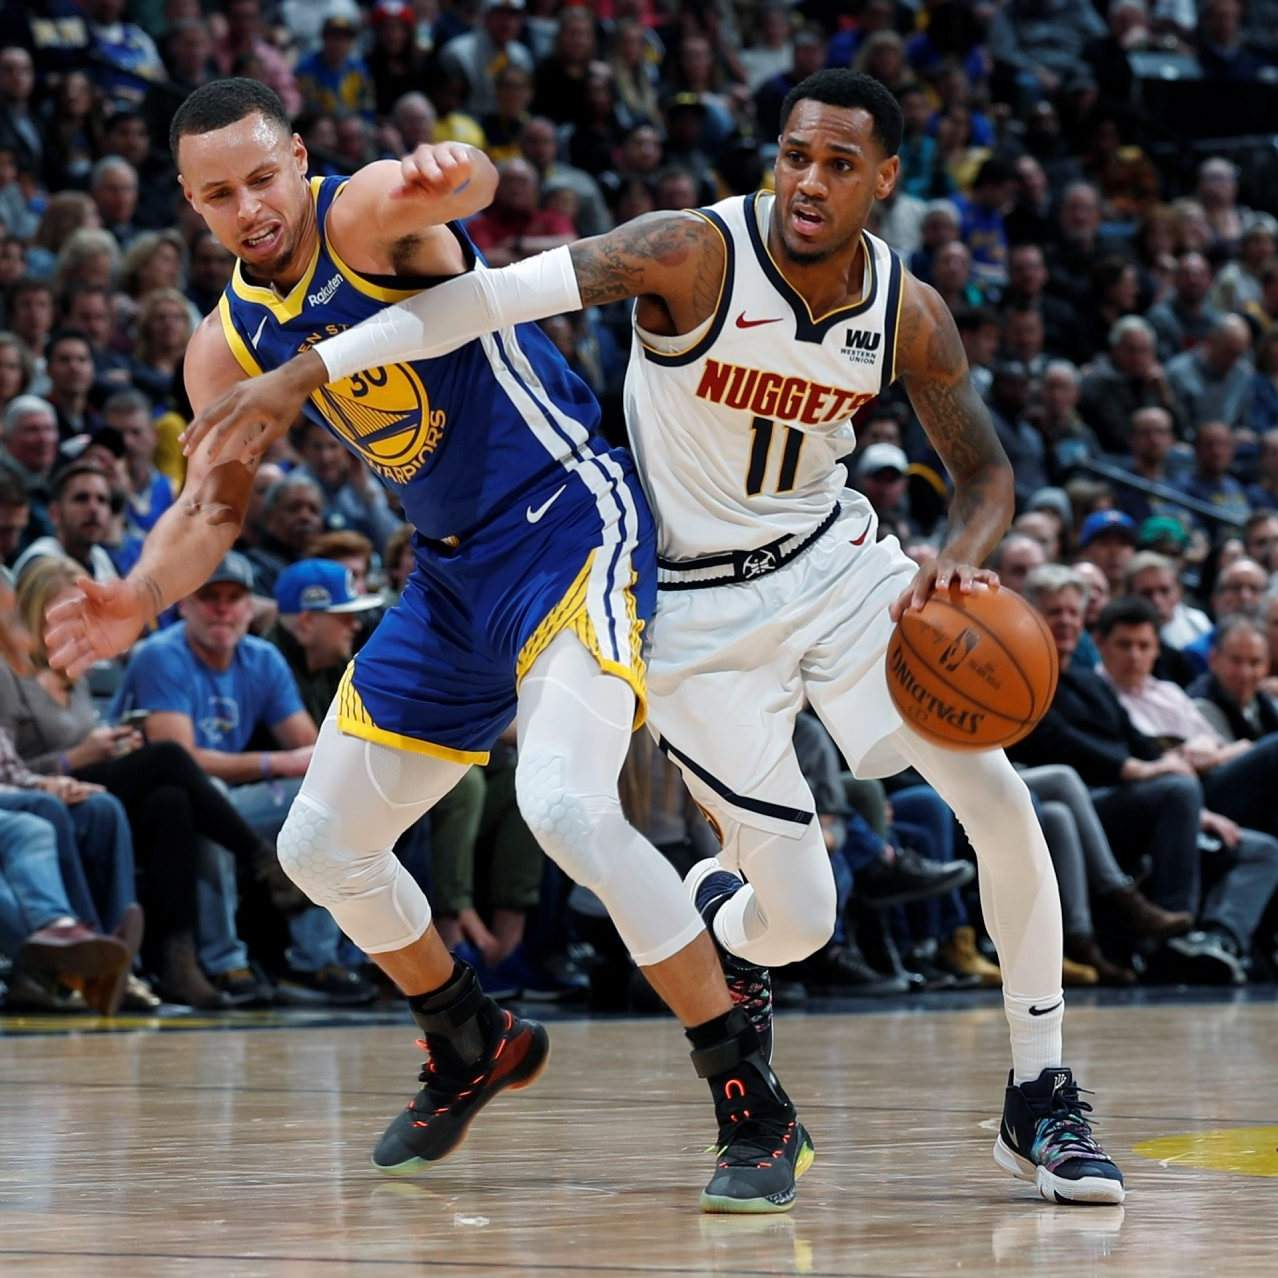 timeless design adbf6 d2c00 Monte Morris the 'gumslinger' for Denver Nuggets